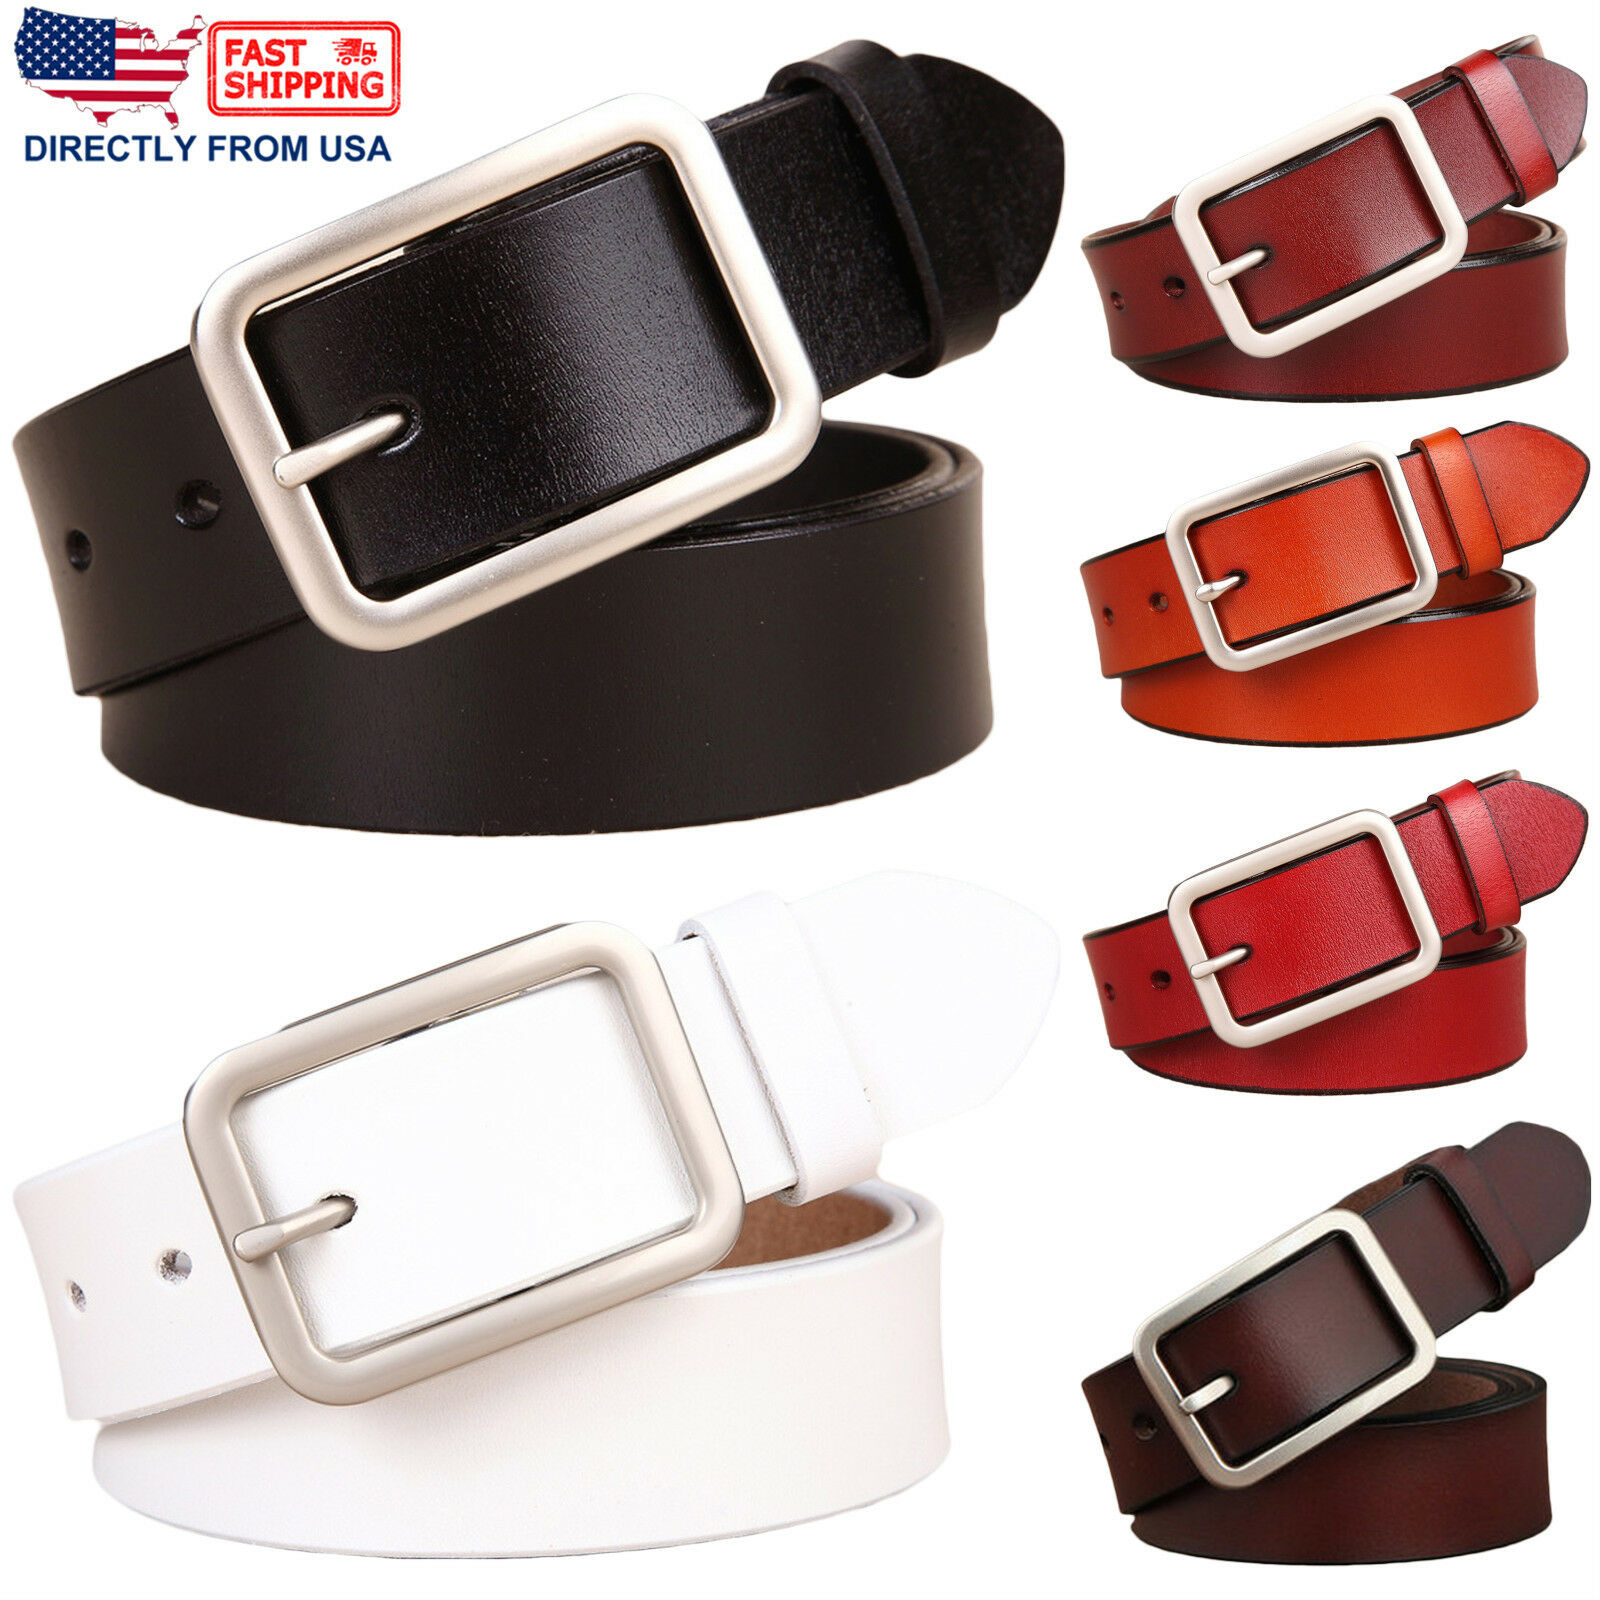 Women's Classic Buckle Handcrafted Genuine Leather Belt Belts